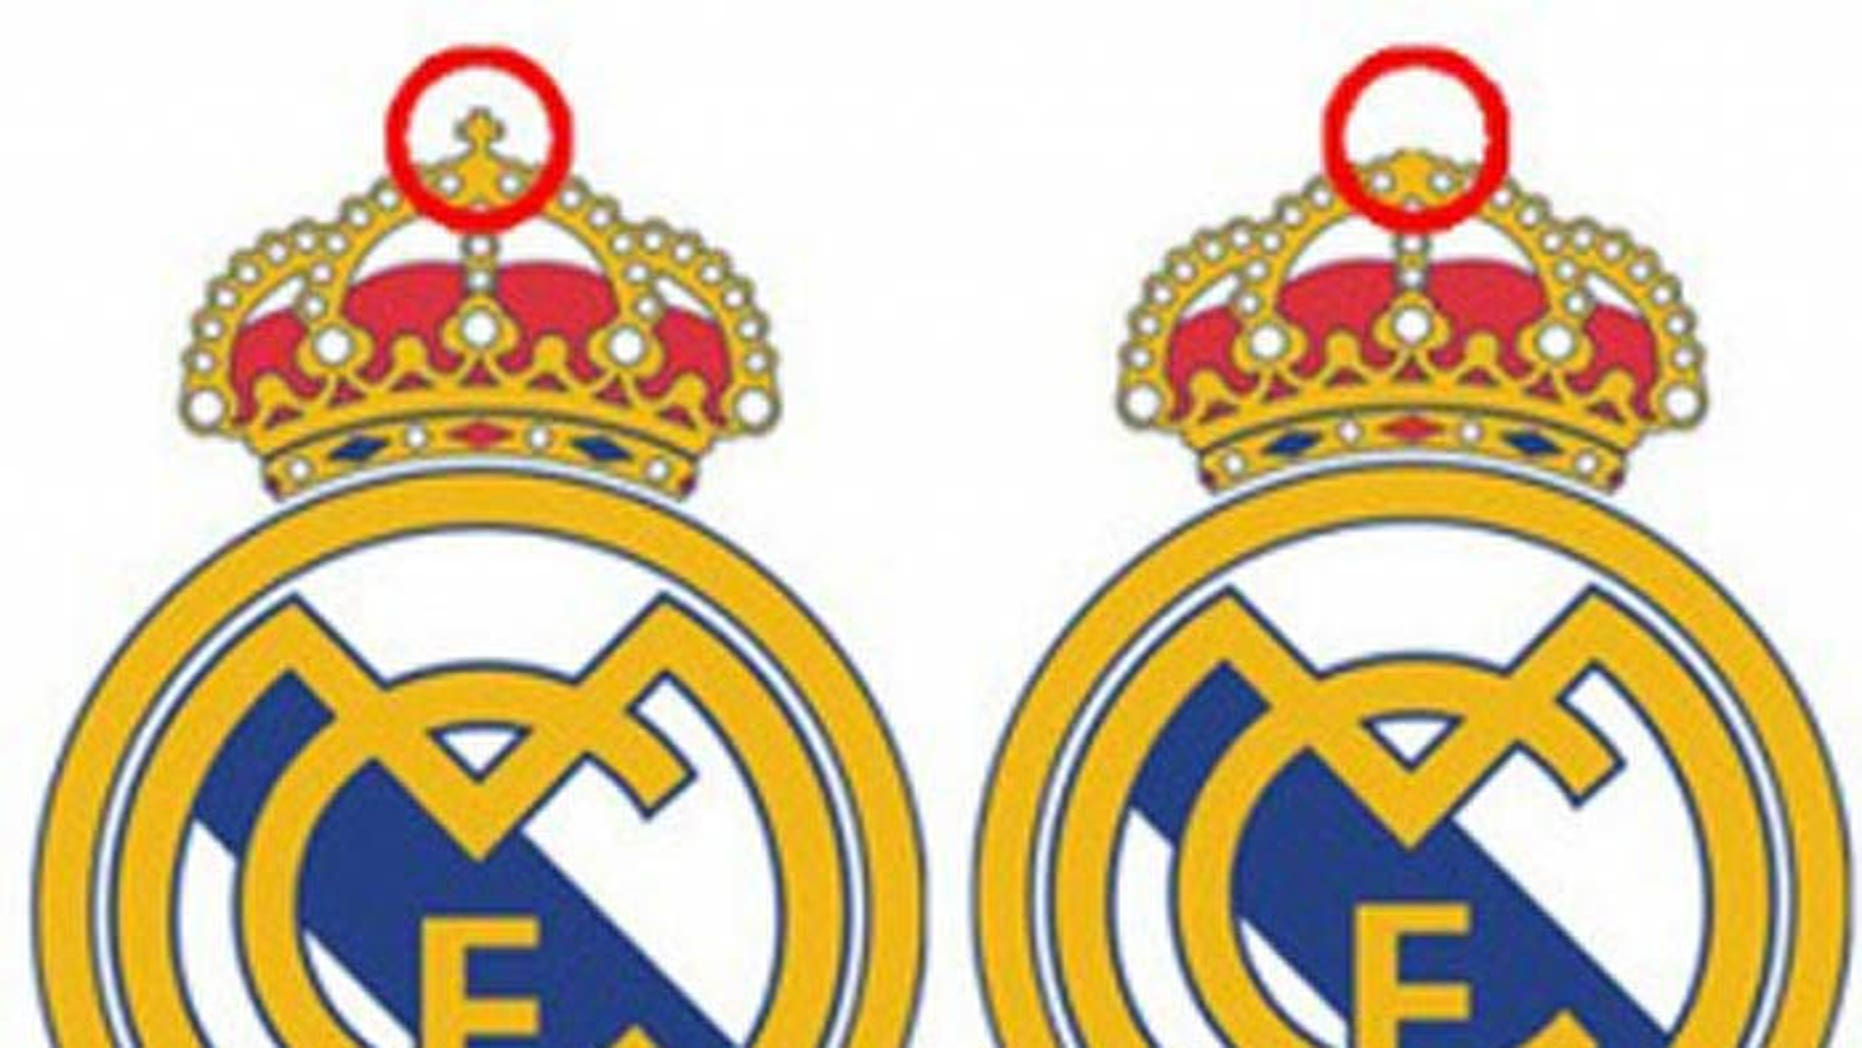 Soccer giant Real Madrid unveiled a new logo for its partnership with a UAE bank - one without the cross.